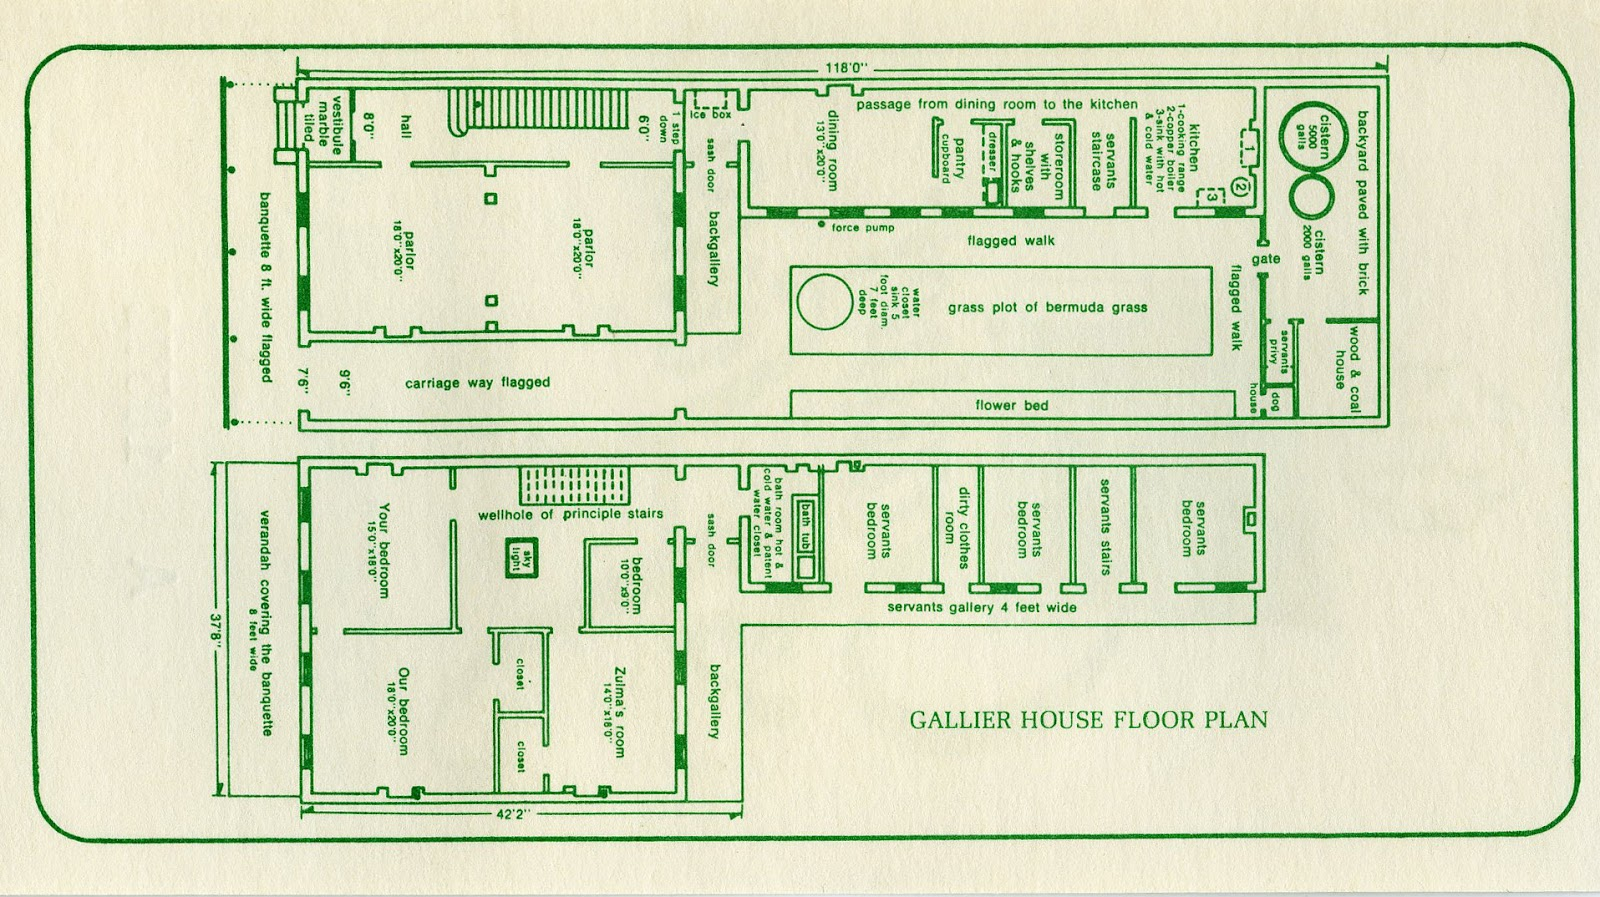 Jax Stumpes 1987 New Orleans I 3 5 Galls Traffic Buster Wiring Diagram Gallier House Floor Plan